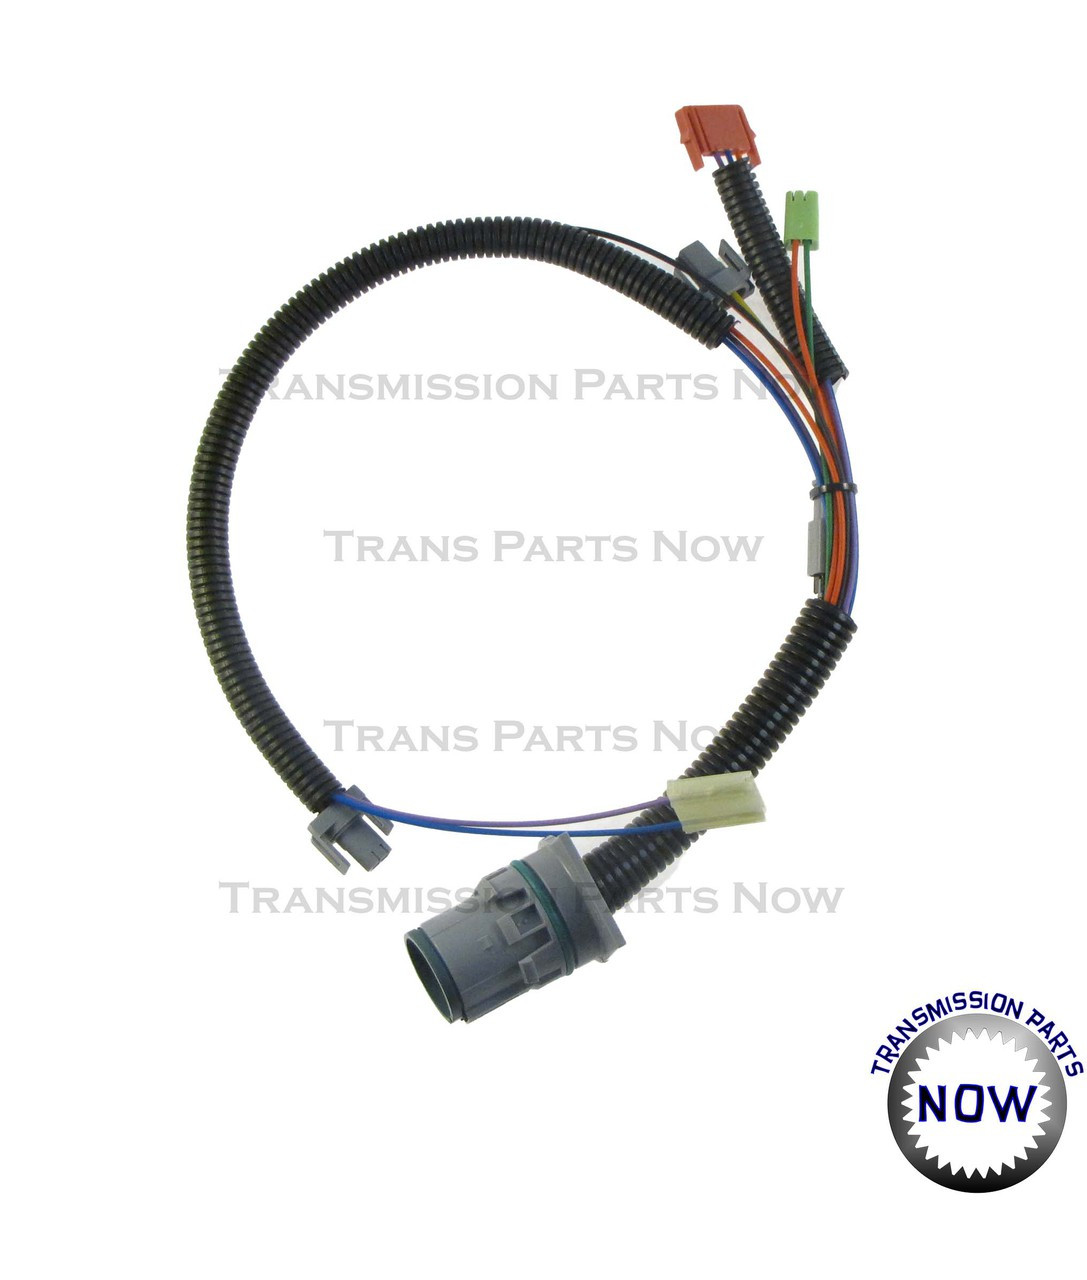 internal wiring harness 1991 2003 34446 free shipping to the us c5 wire harness 4r100 internal wire harness [ 1087 x 1280 Pixel ]